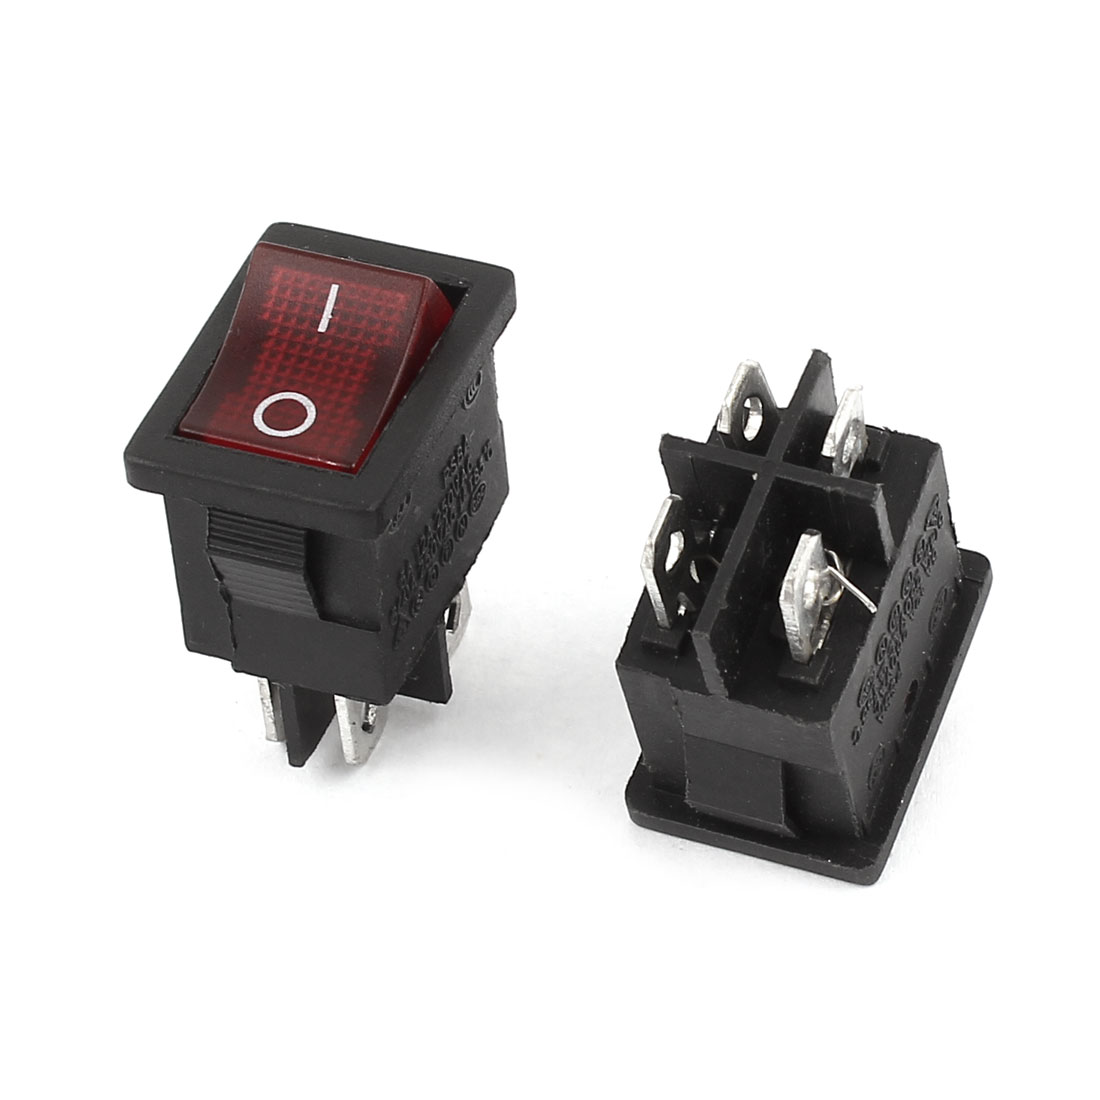 2 Pcs 4Pin DPST ON-OFF Snap in Panel Mount Rocker Switch AC 6A/250V 10A/125V